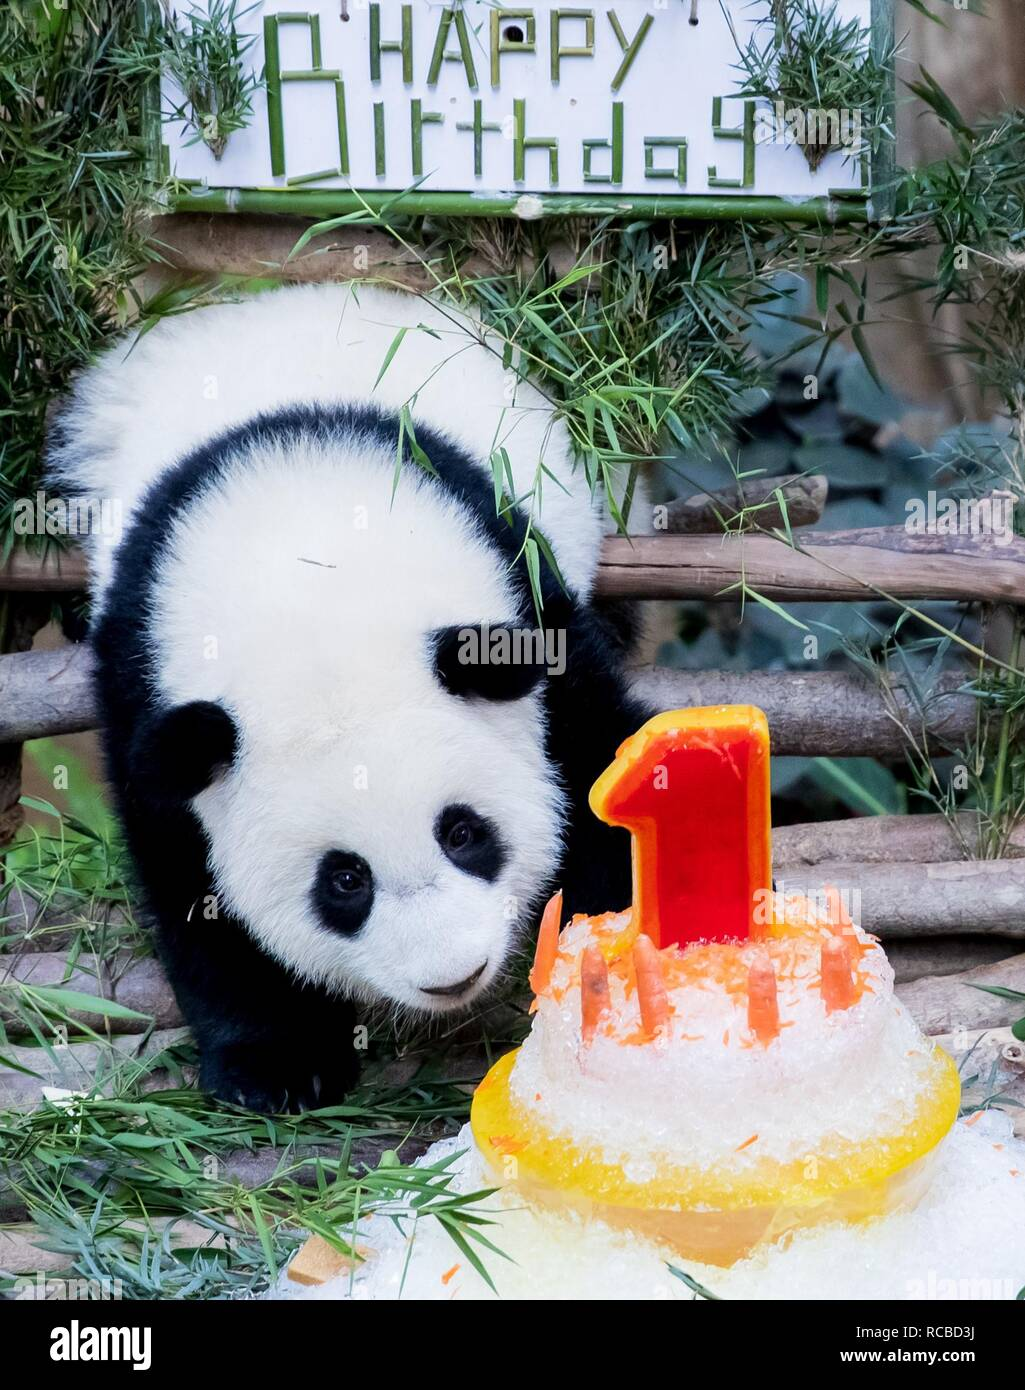 A Baby Giant Panda Tastes Her Birthday